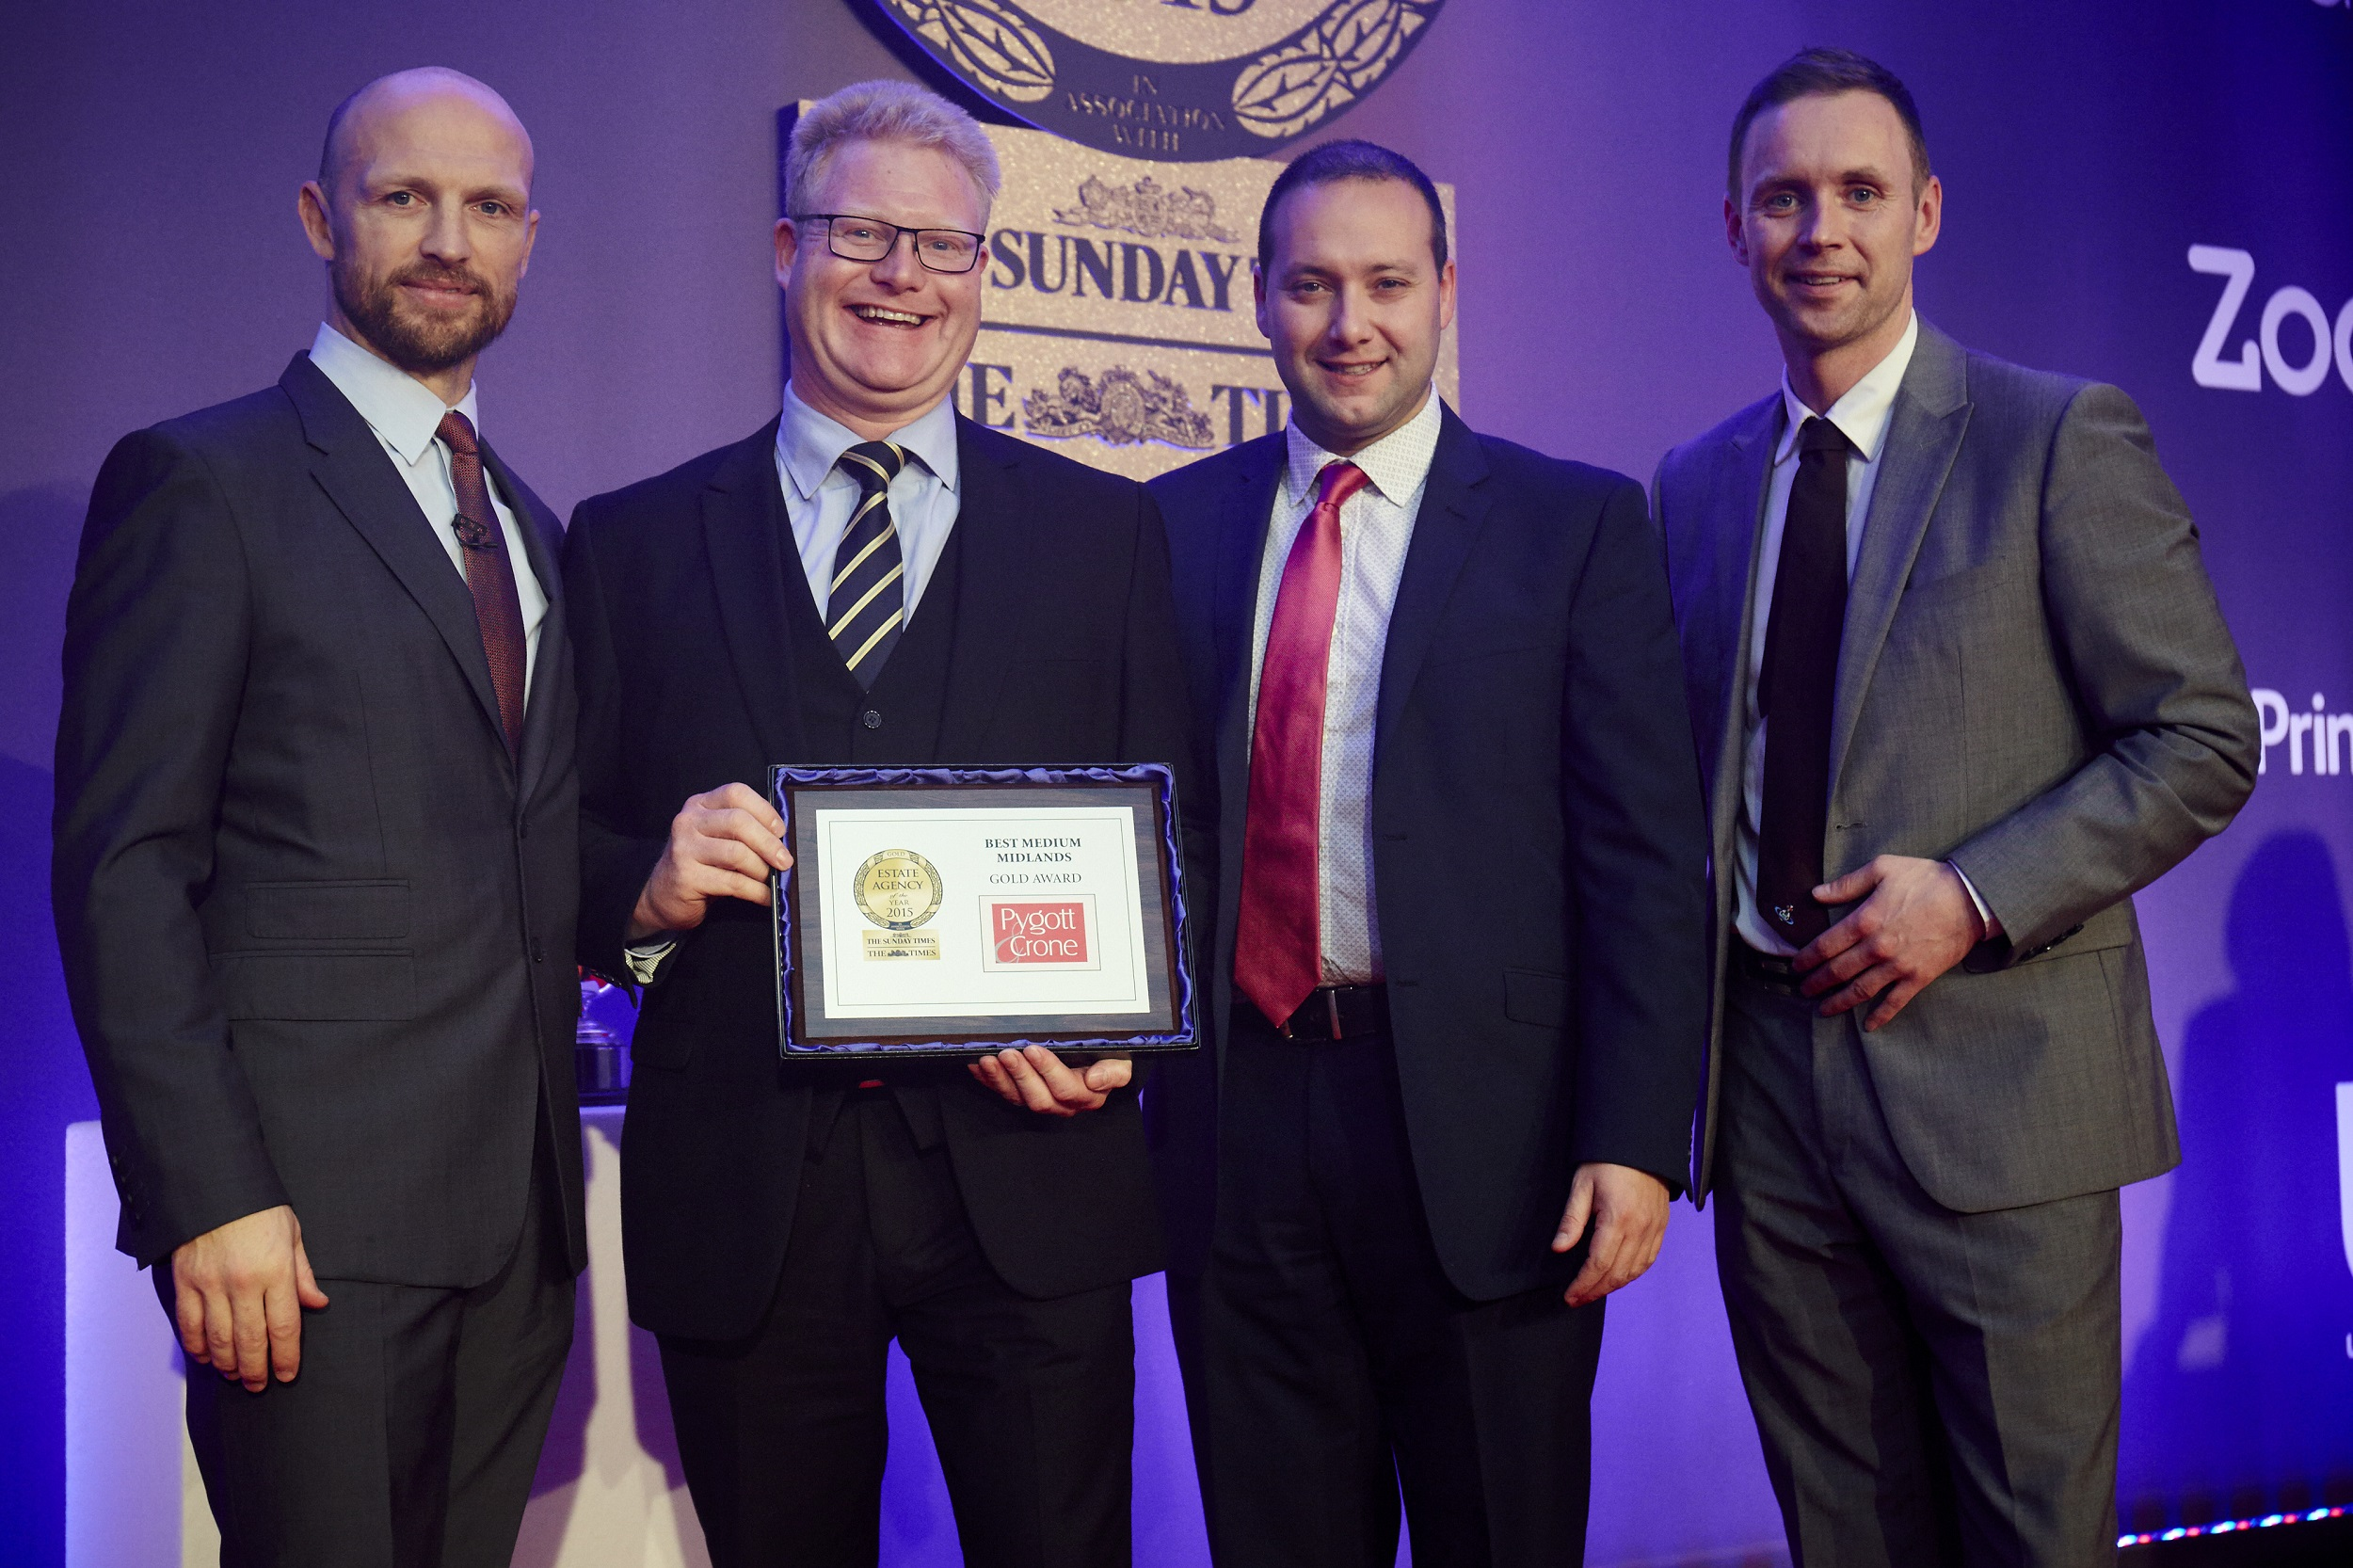 Lincolnshire estate agent scoops top prize at The Times and Sunday Times Property Awards